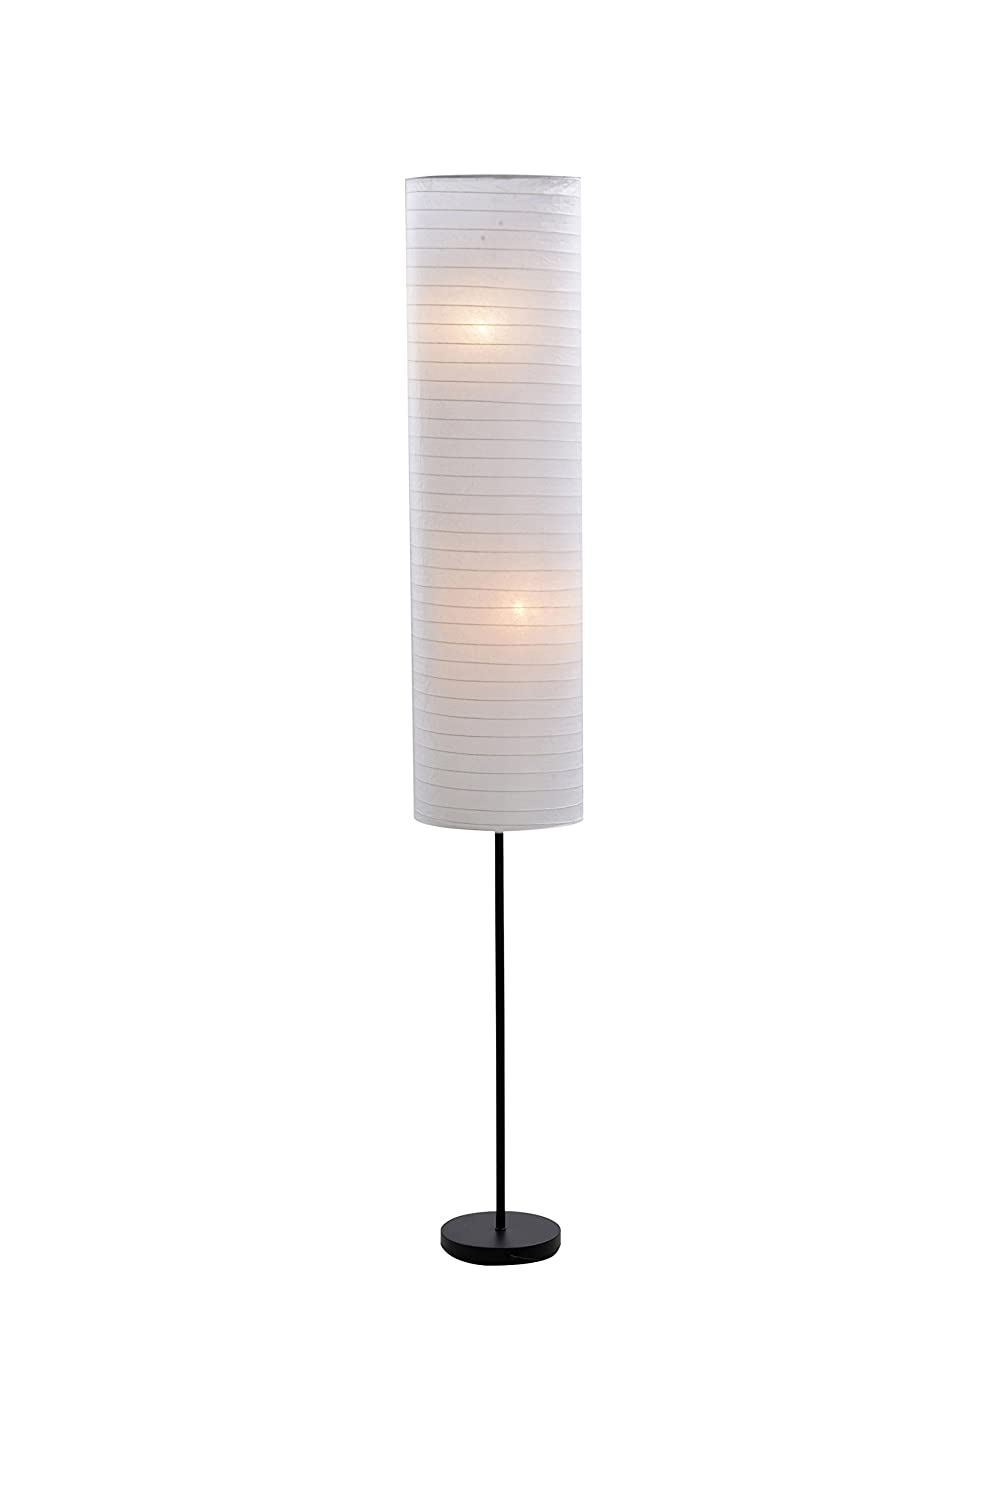 Amazon catalina 18583 000 paper stick floor lamp with rice amazon catalina 18583 000 paper stick floor lamp with rice paper shade 70 inch black home improvement aloadofball Image collections